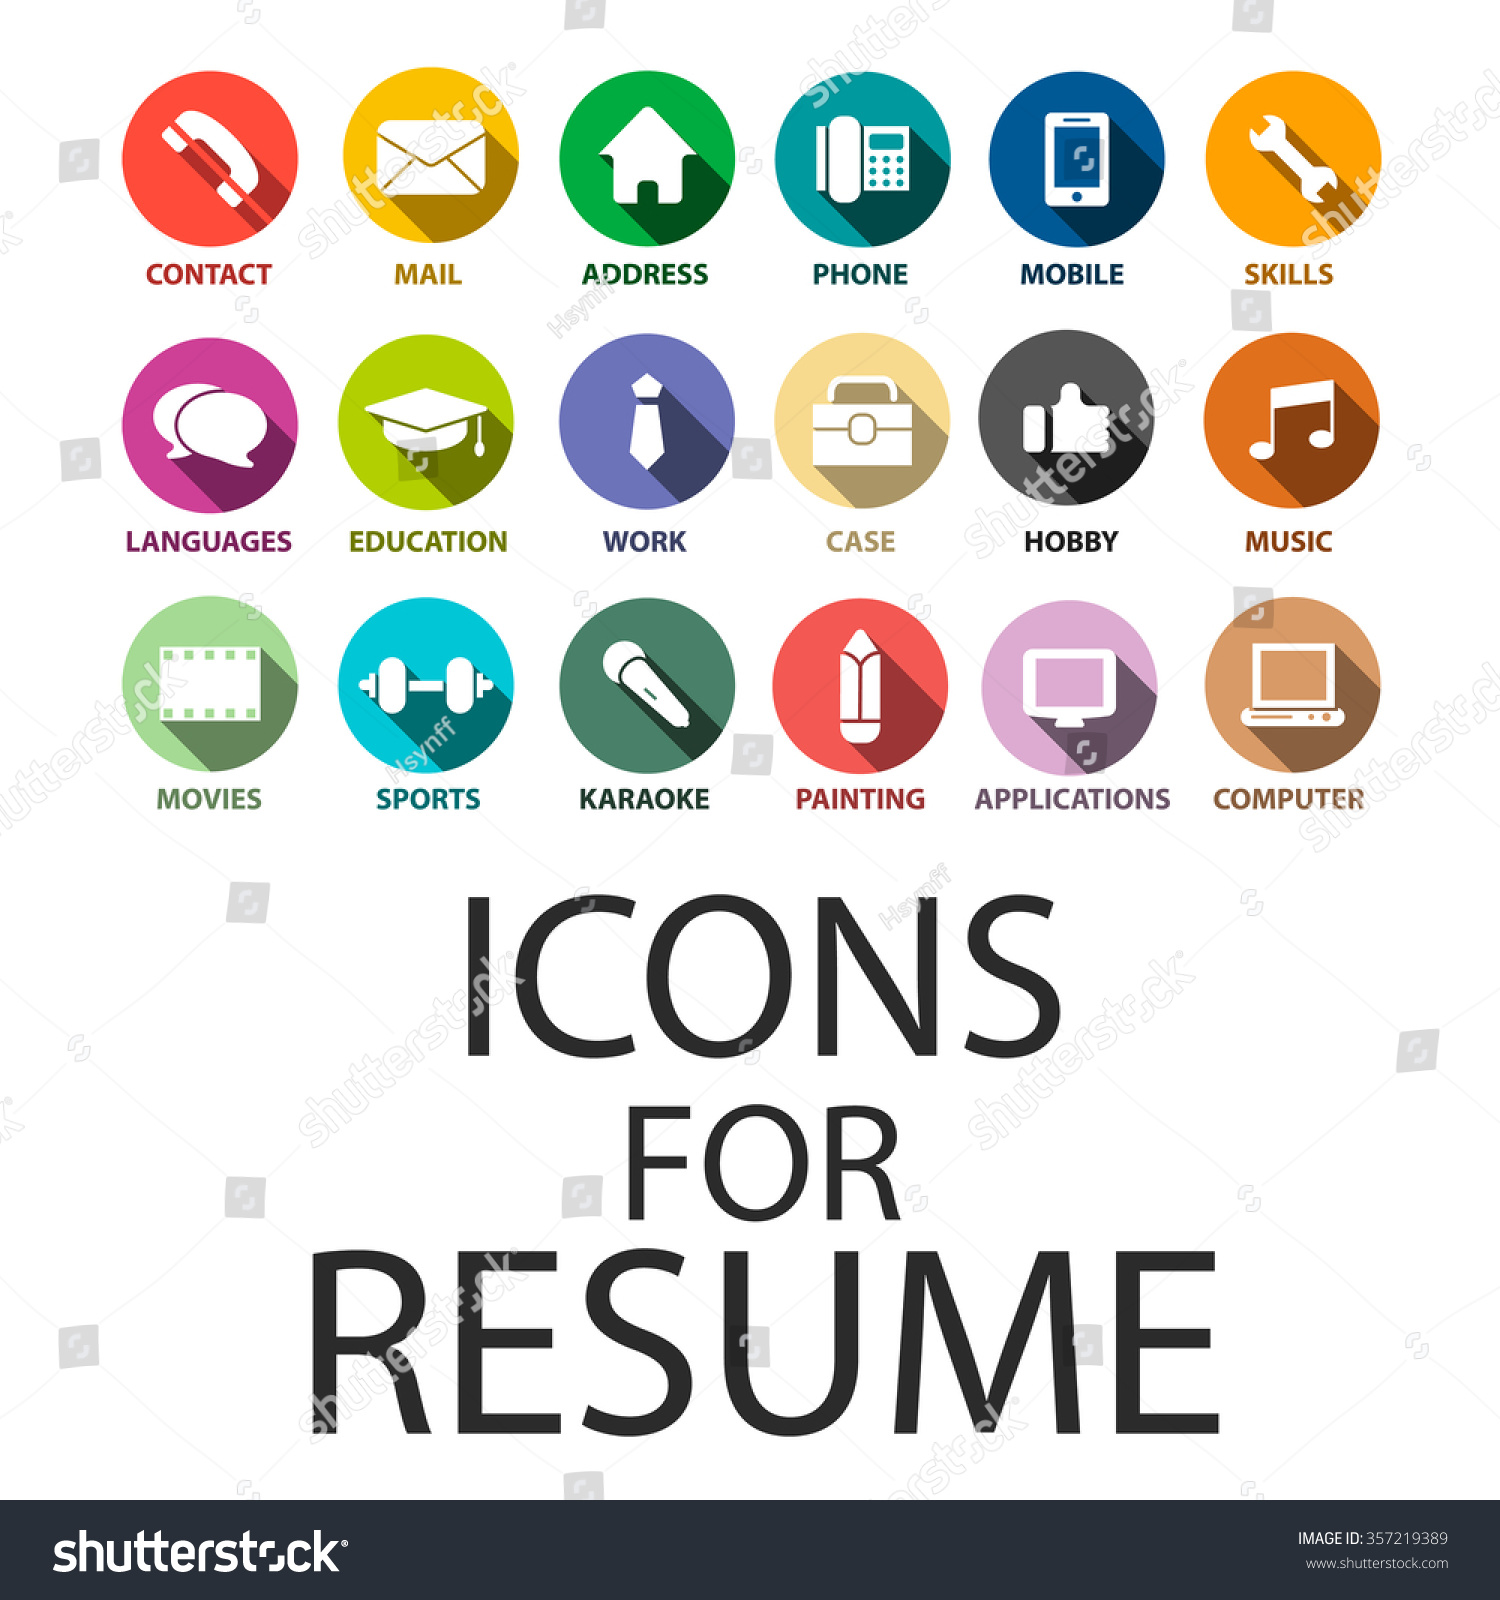 icons set your resume cv job image vectorielle 357219389